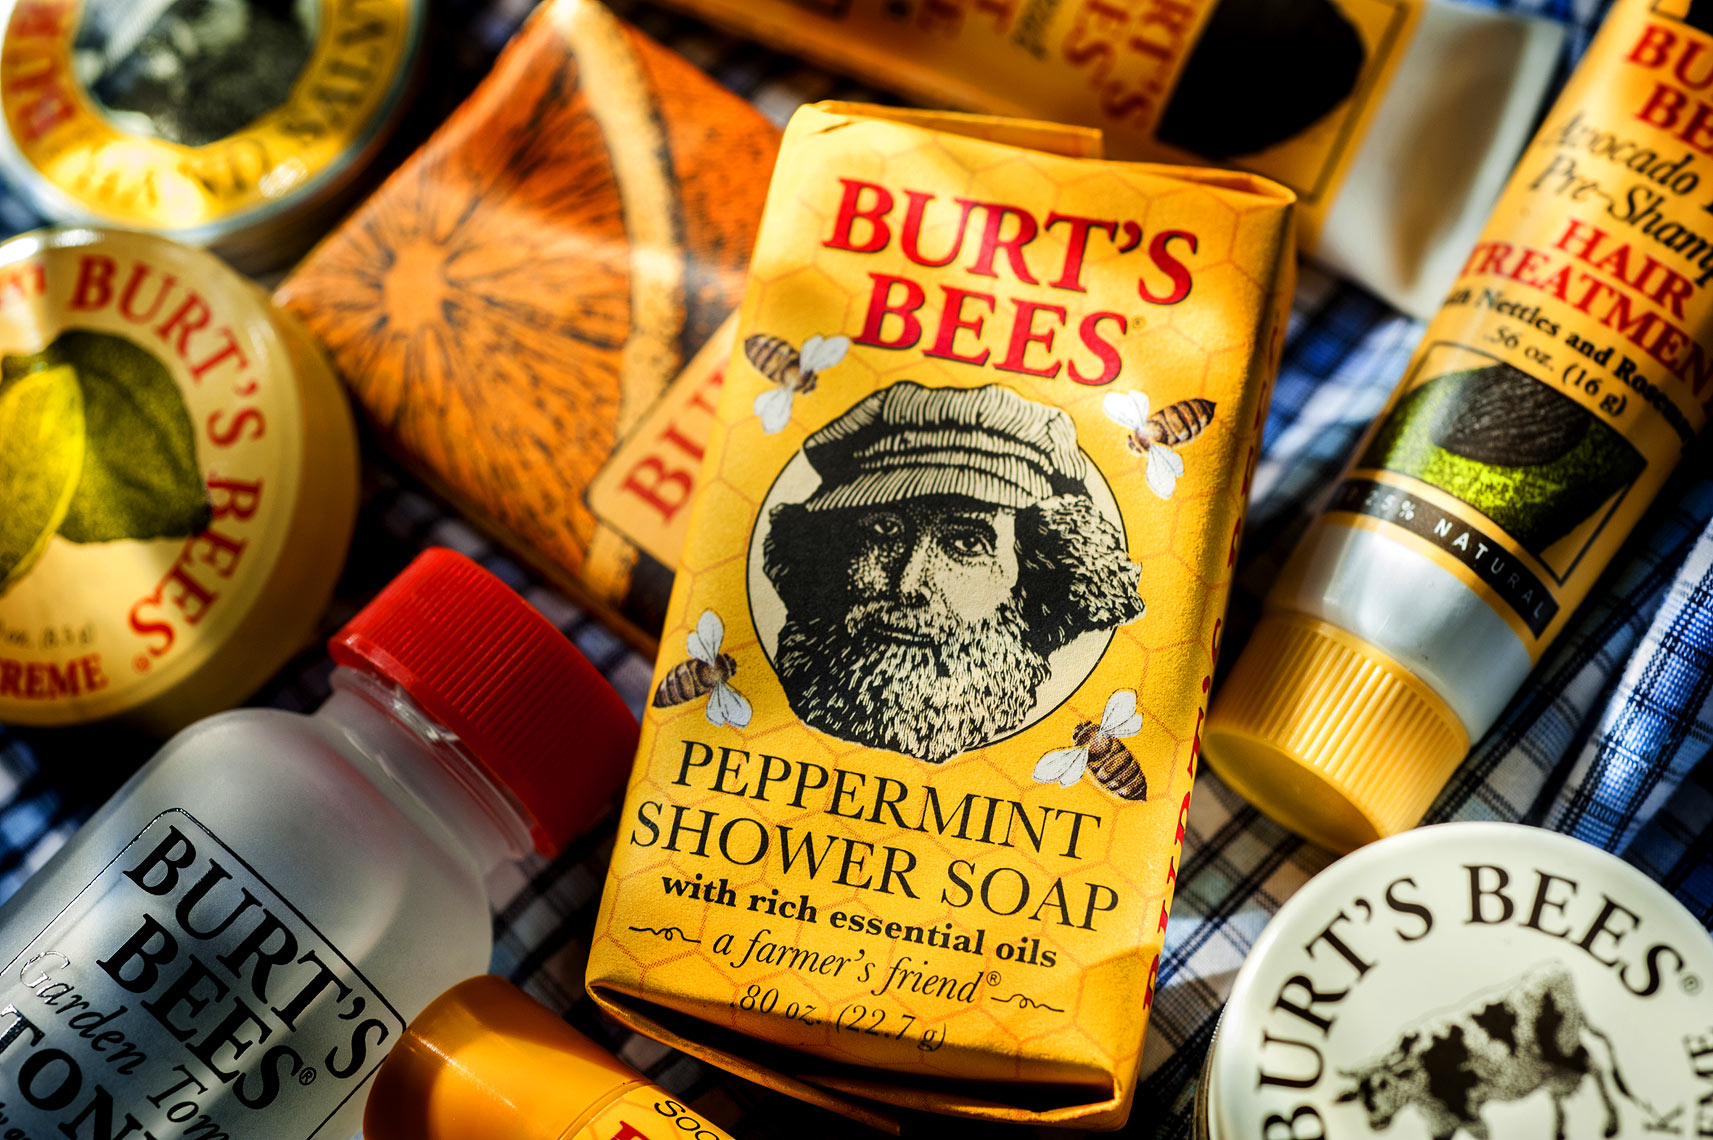 Raleigh still life photography Burts Bees Bryan Regan